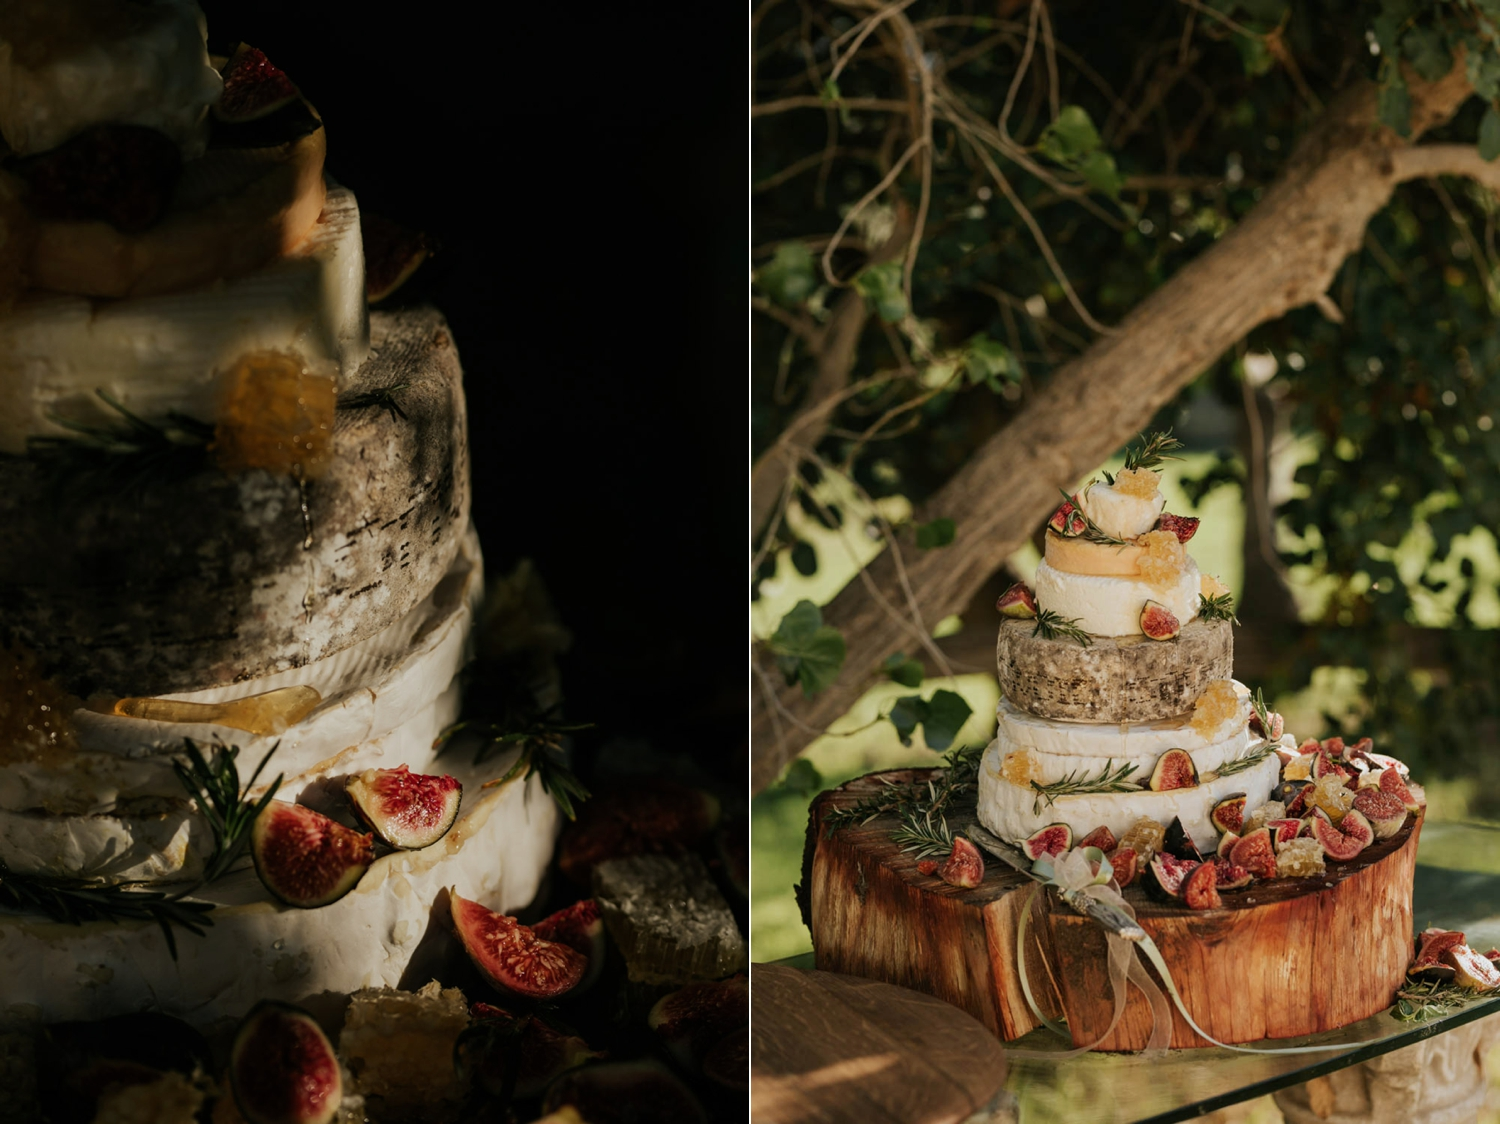 An alternative, different kind of wedding cake make up of layers of French cheese wheels, figs and other types of fruit, with a wooden stump as a cake stand.